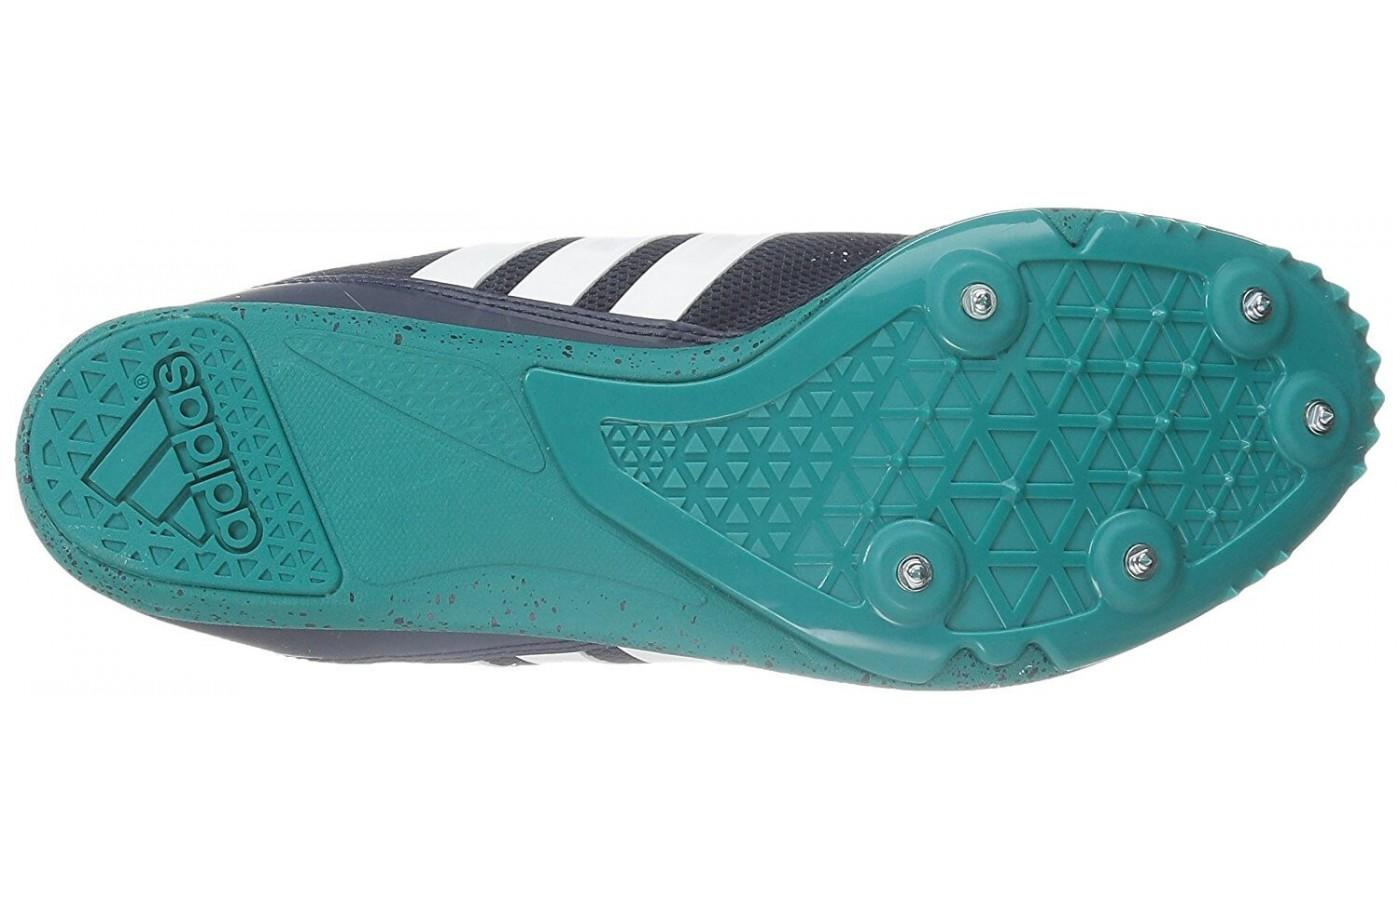 Strategically placed spikes encourage speed and traction